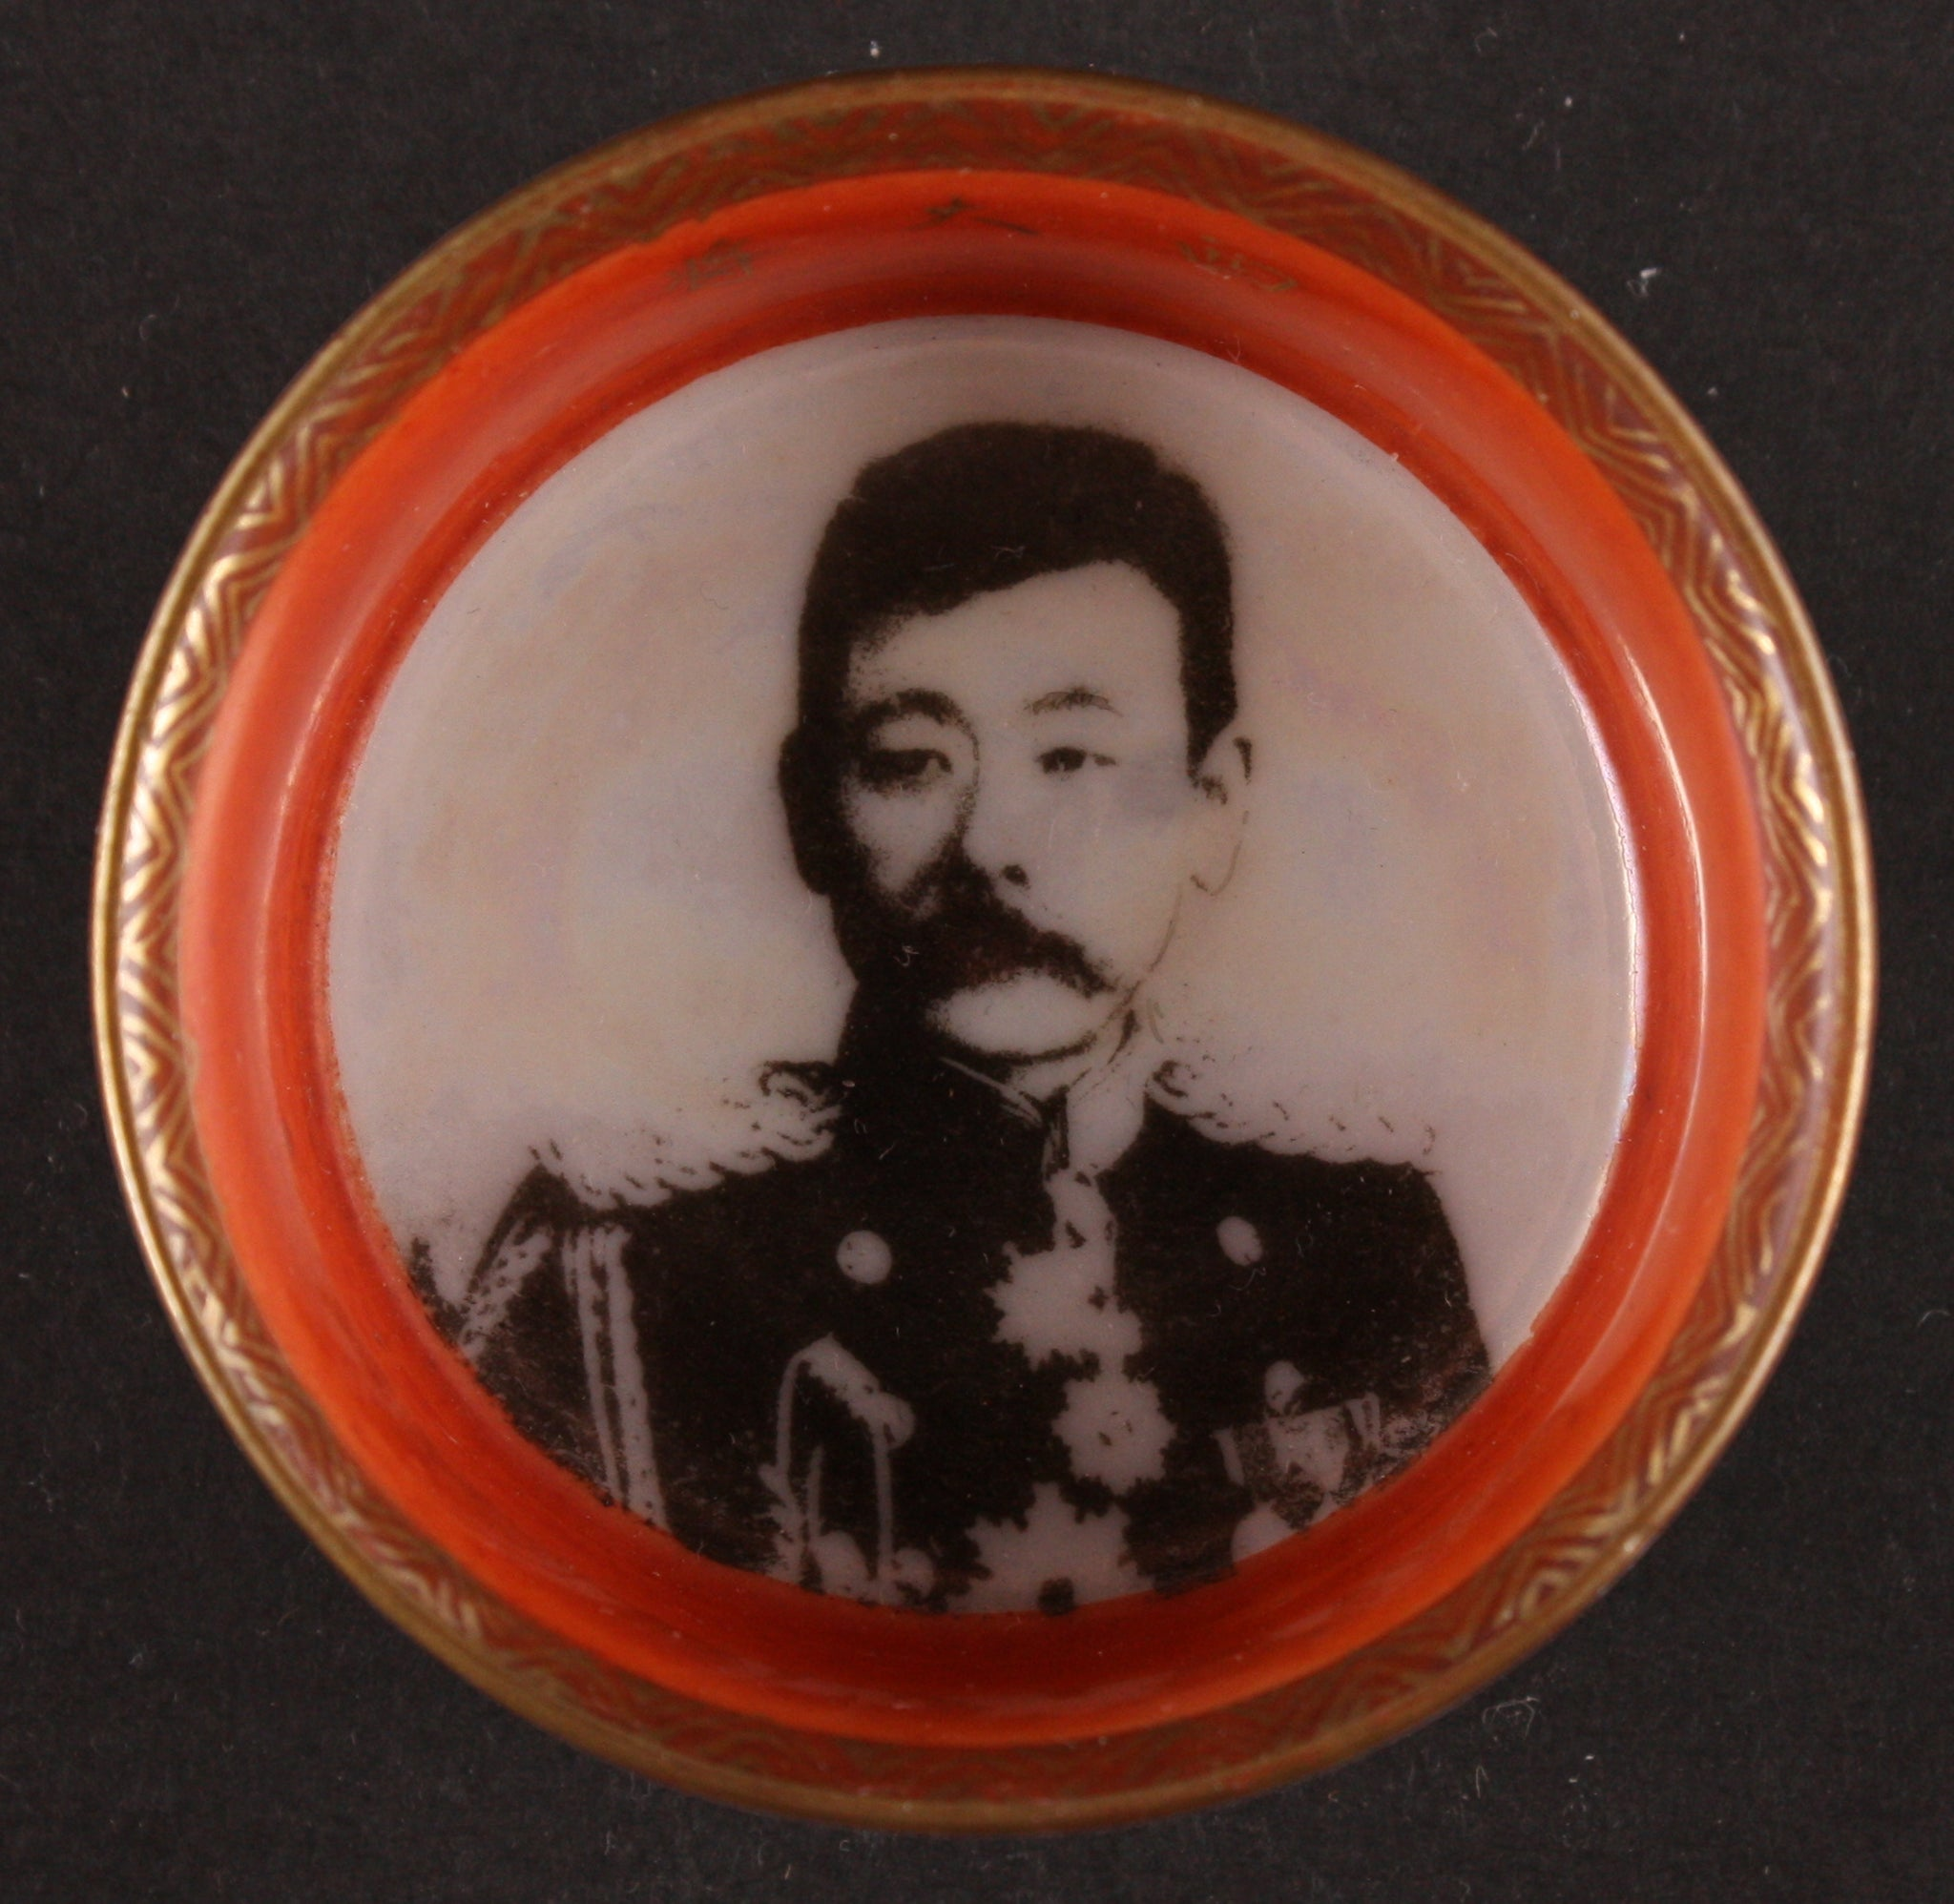 Rare Russo Japanese War General Nishi Photo Transfer Army Sake Cup